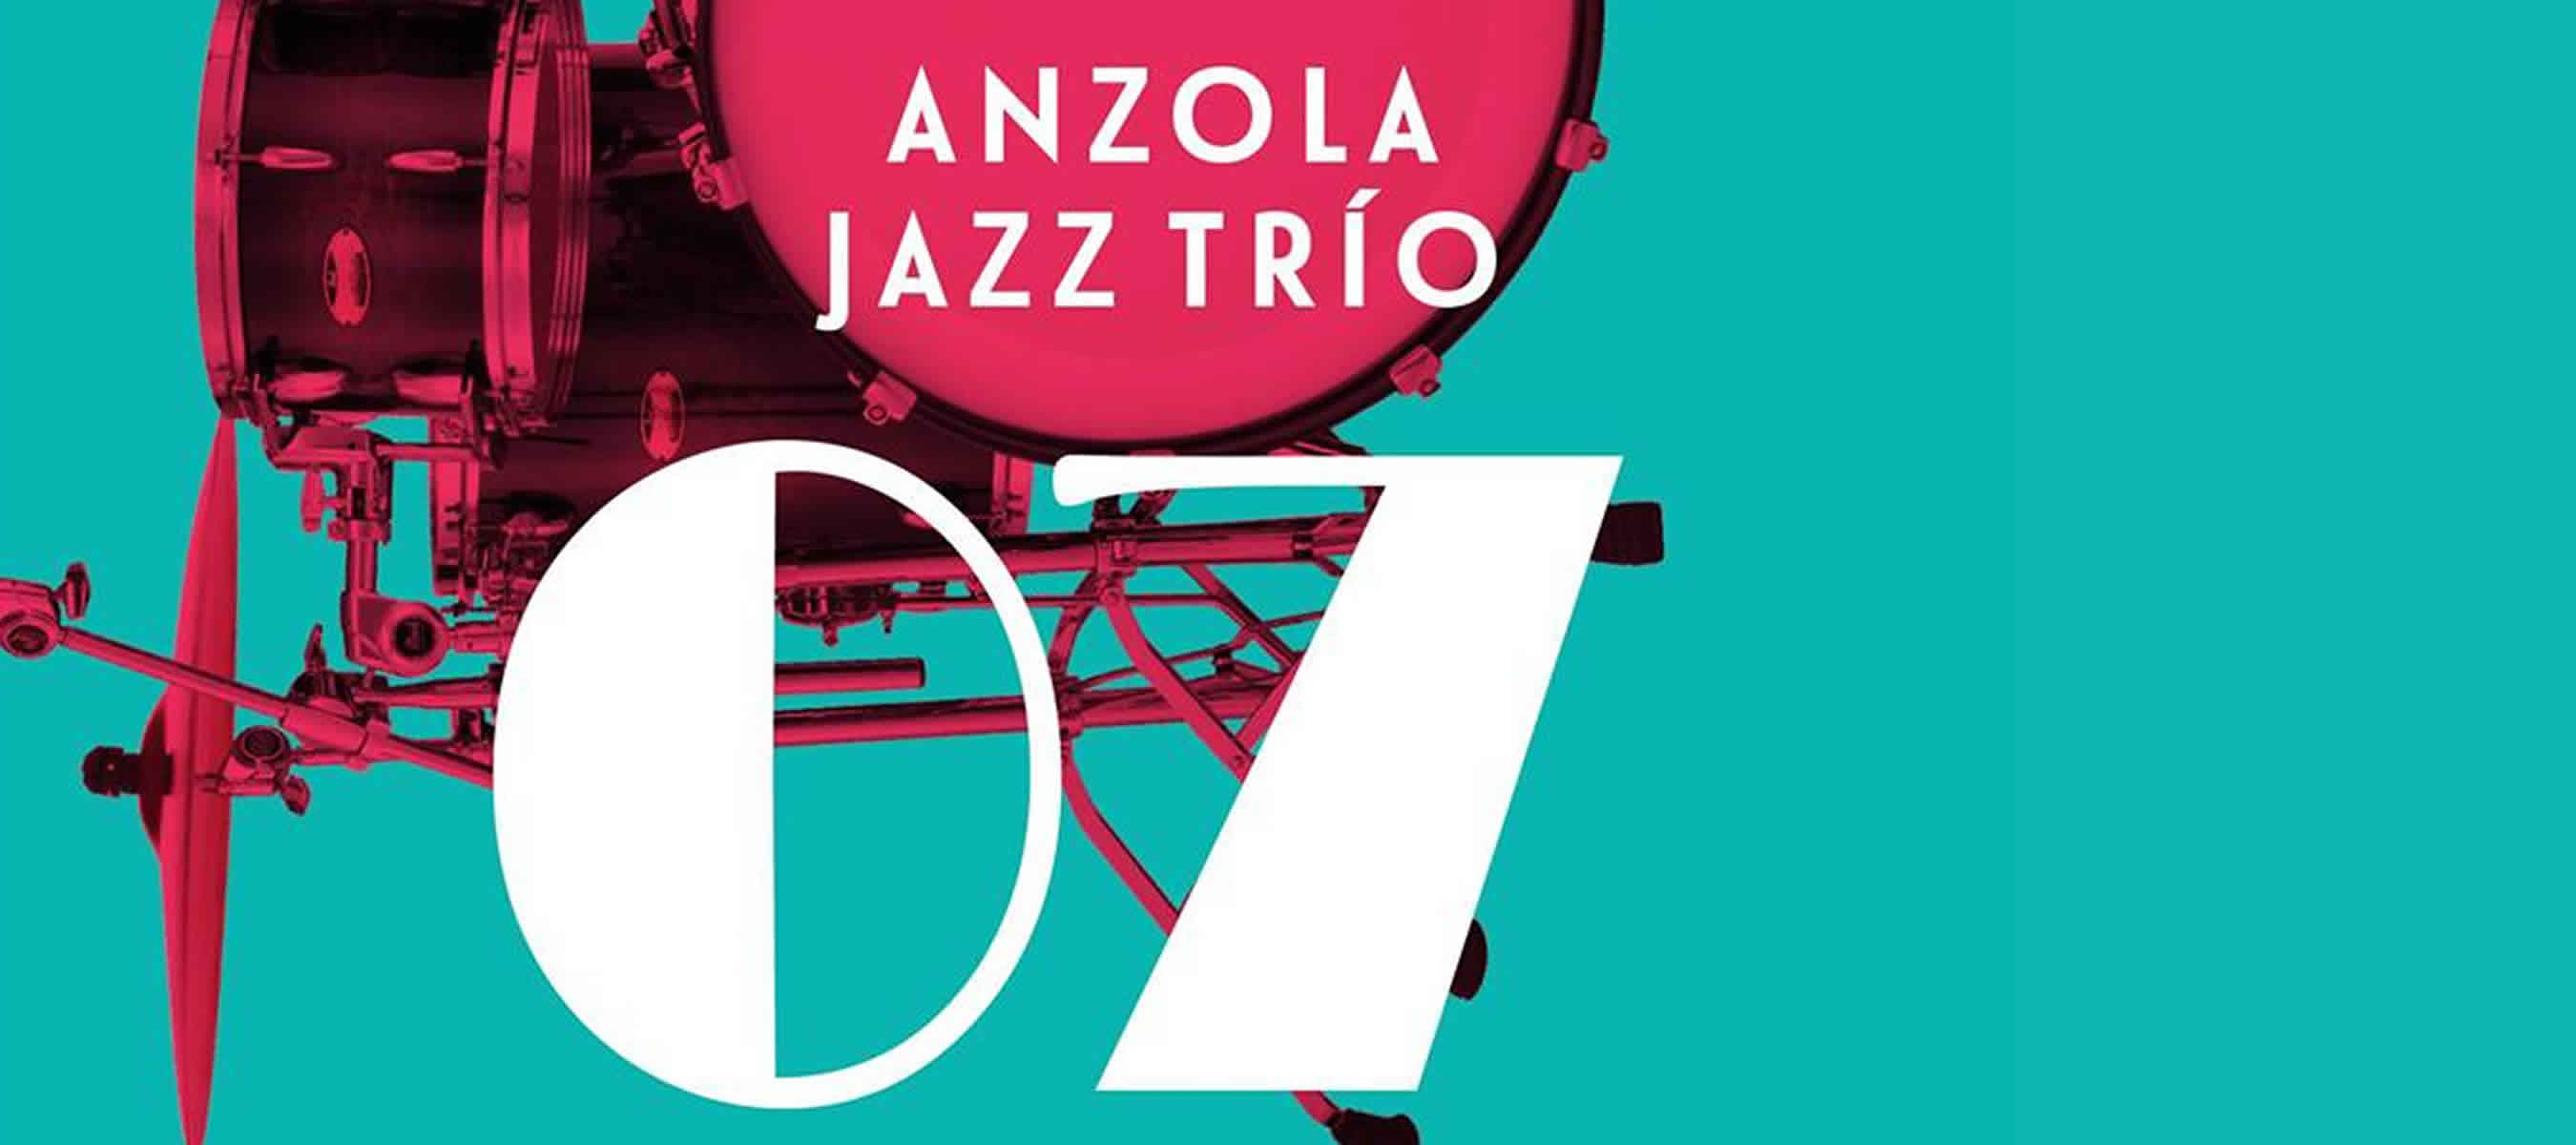 Anzola Jazz Trio en Smoking Molly